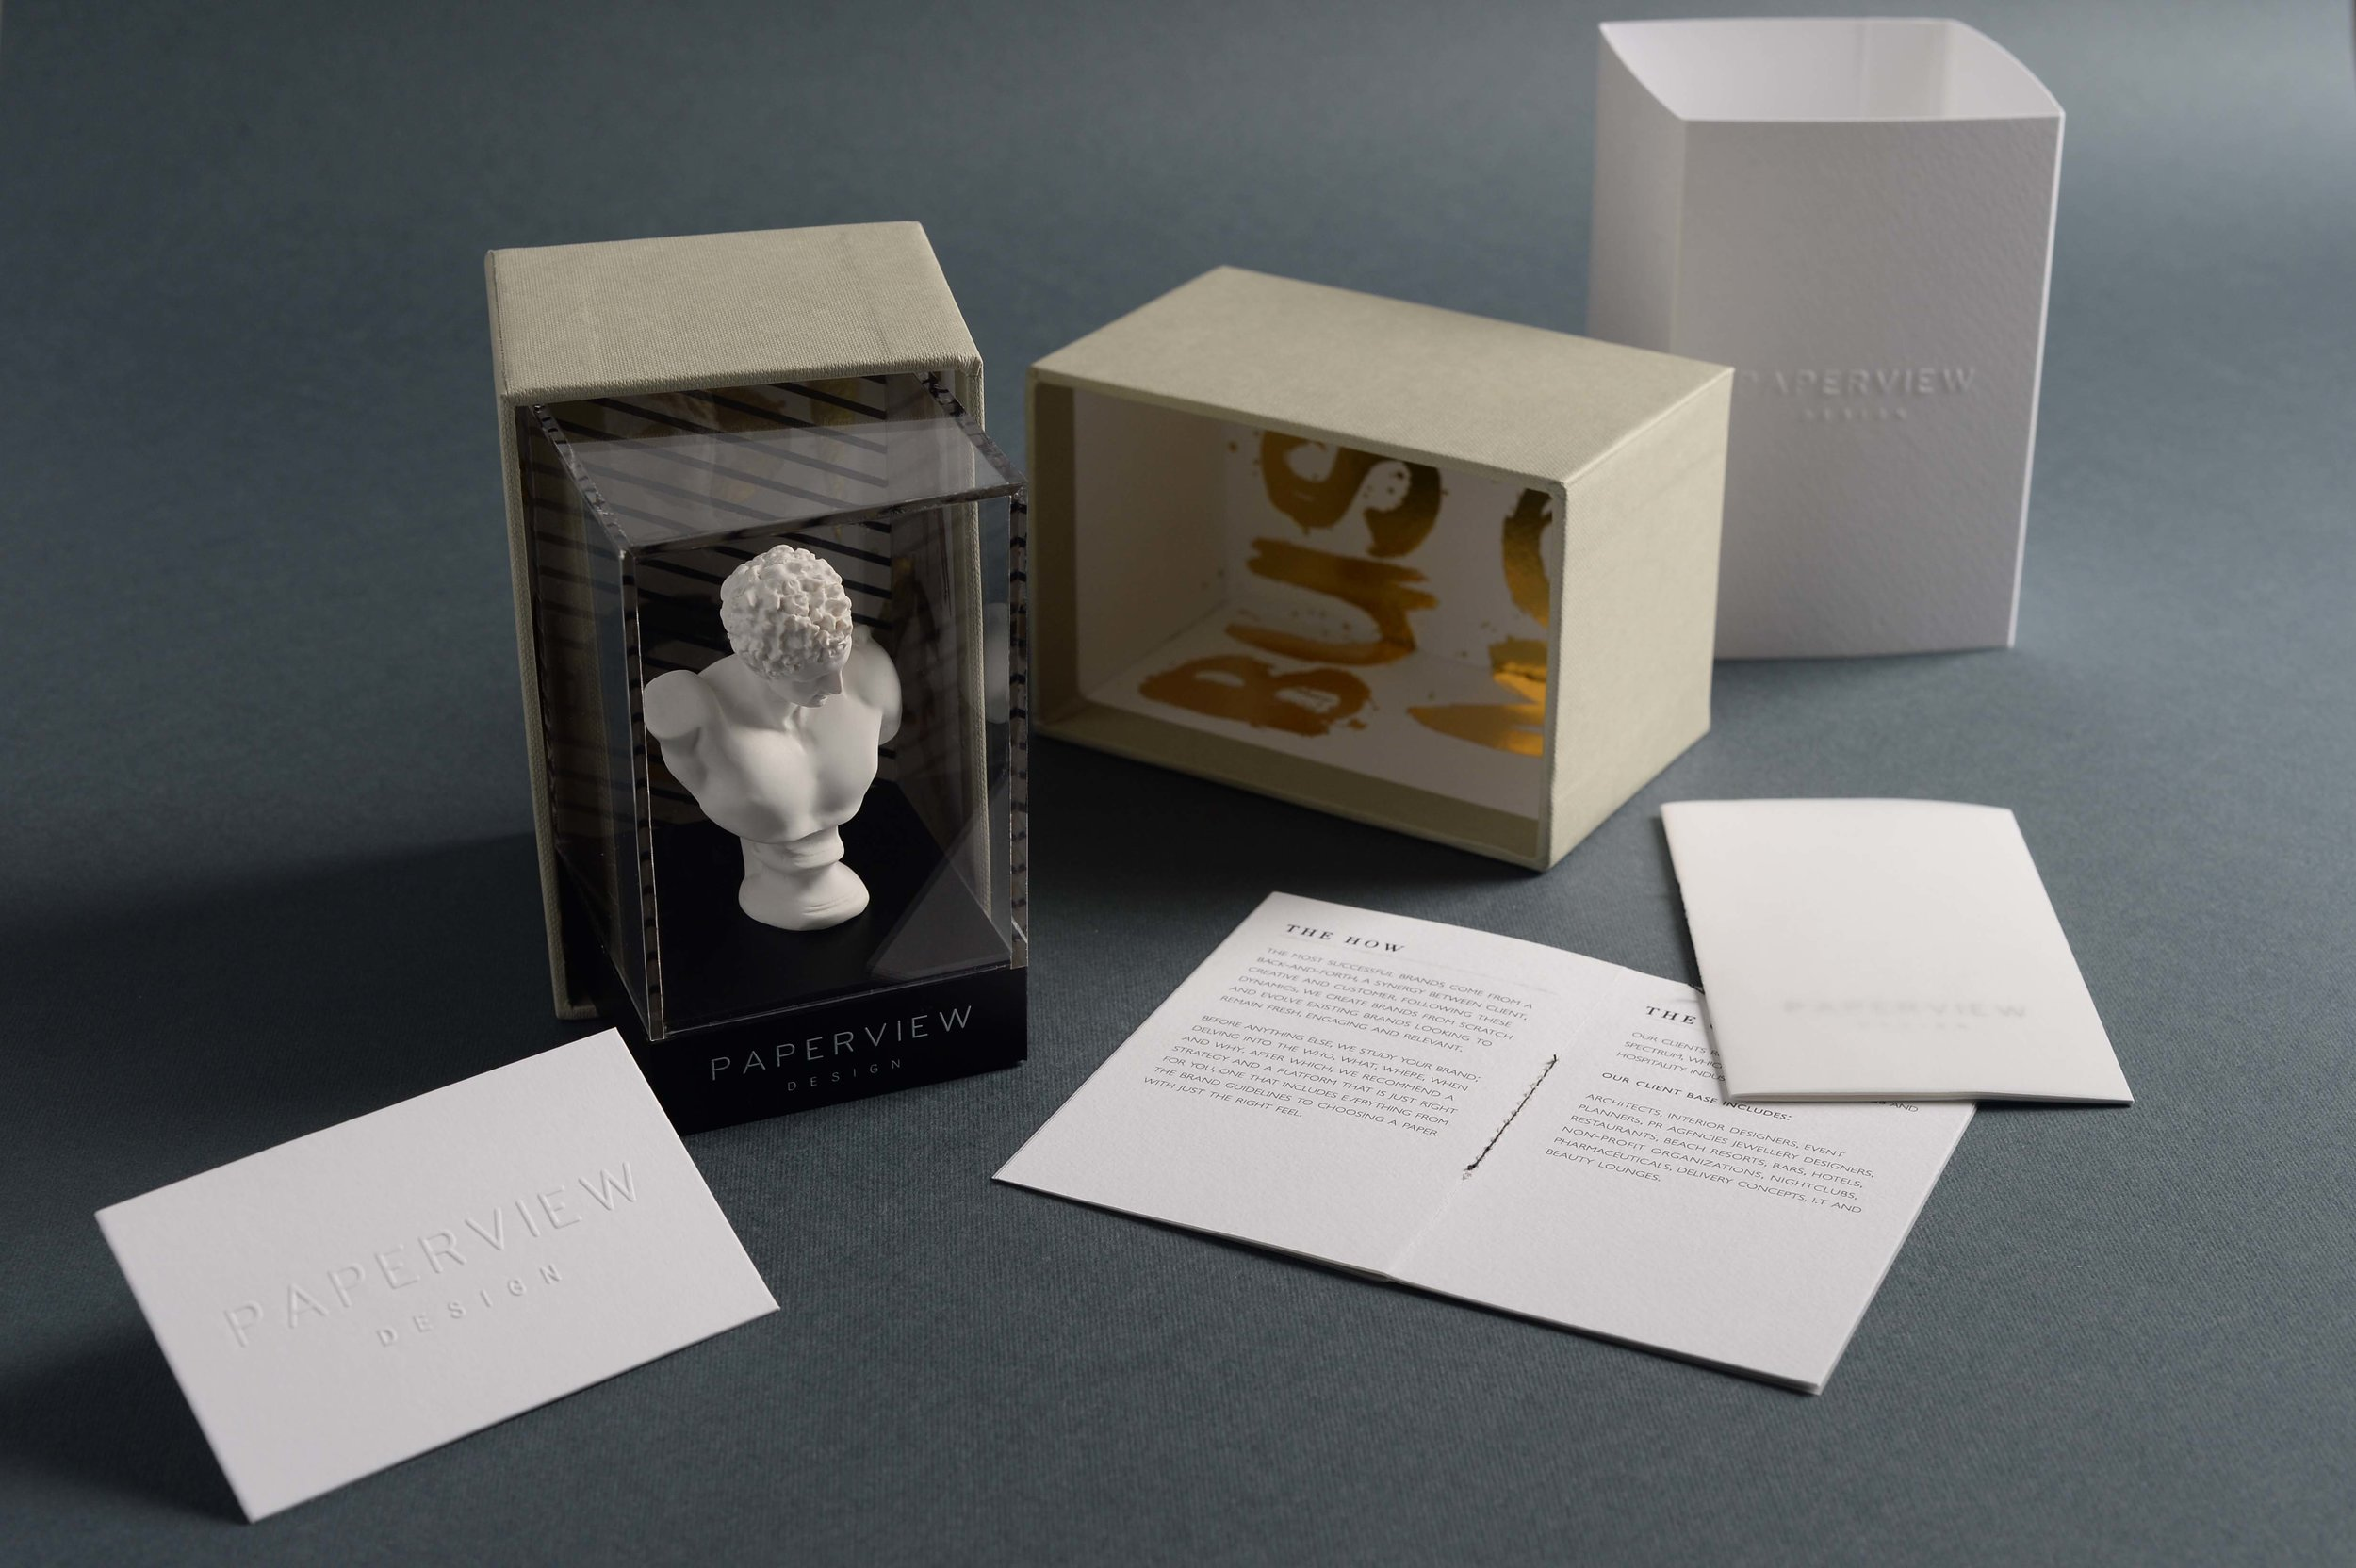 Paperview-Gift-2.jpg